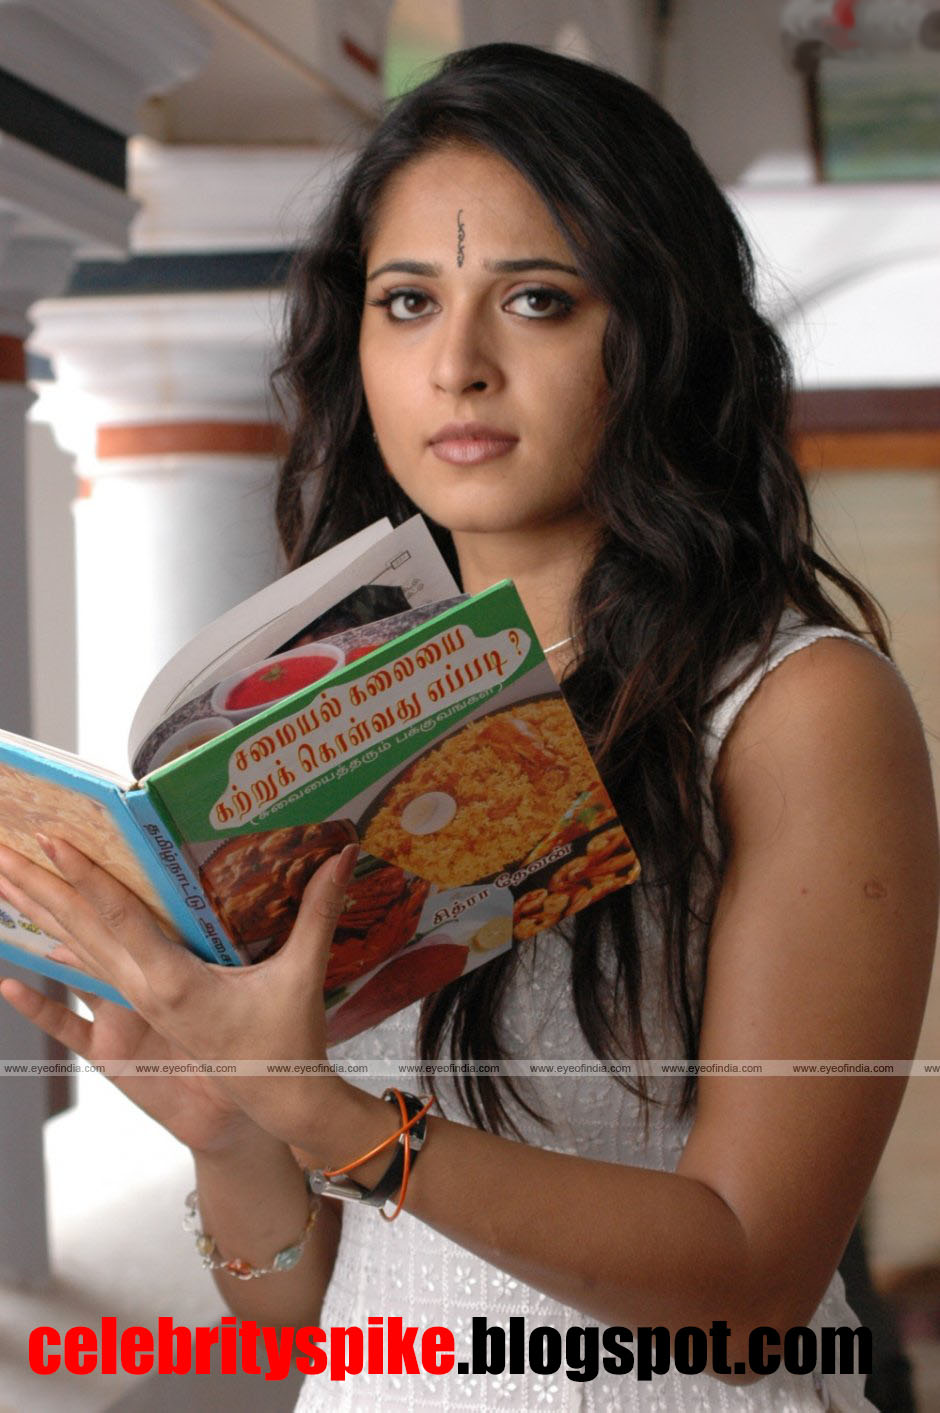 babes sexy xxx anushka shetty hot pictures wallpapers